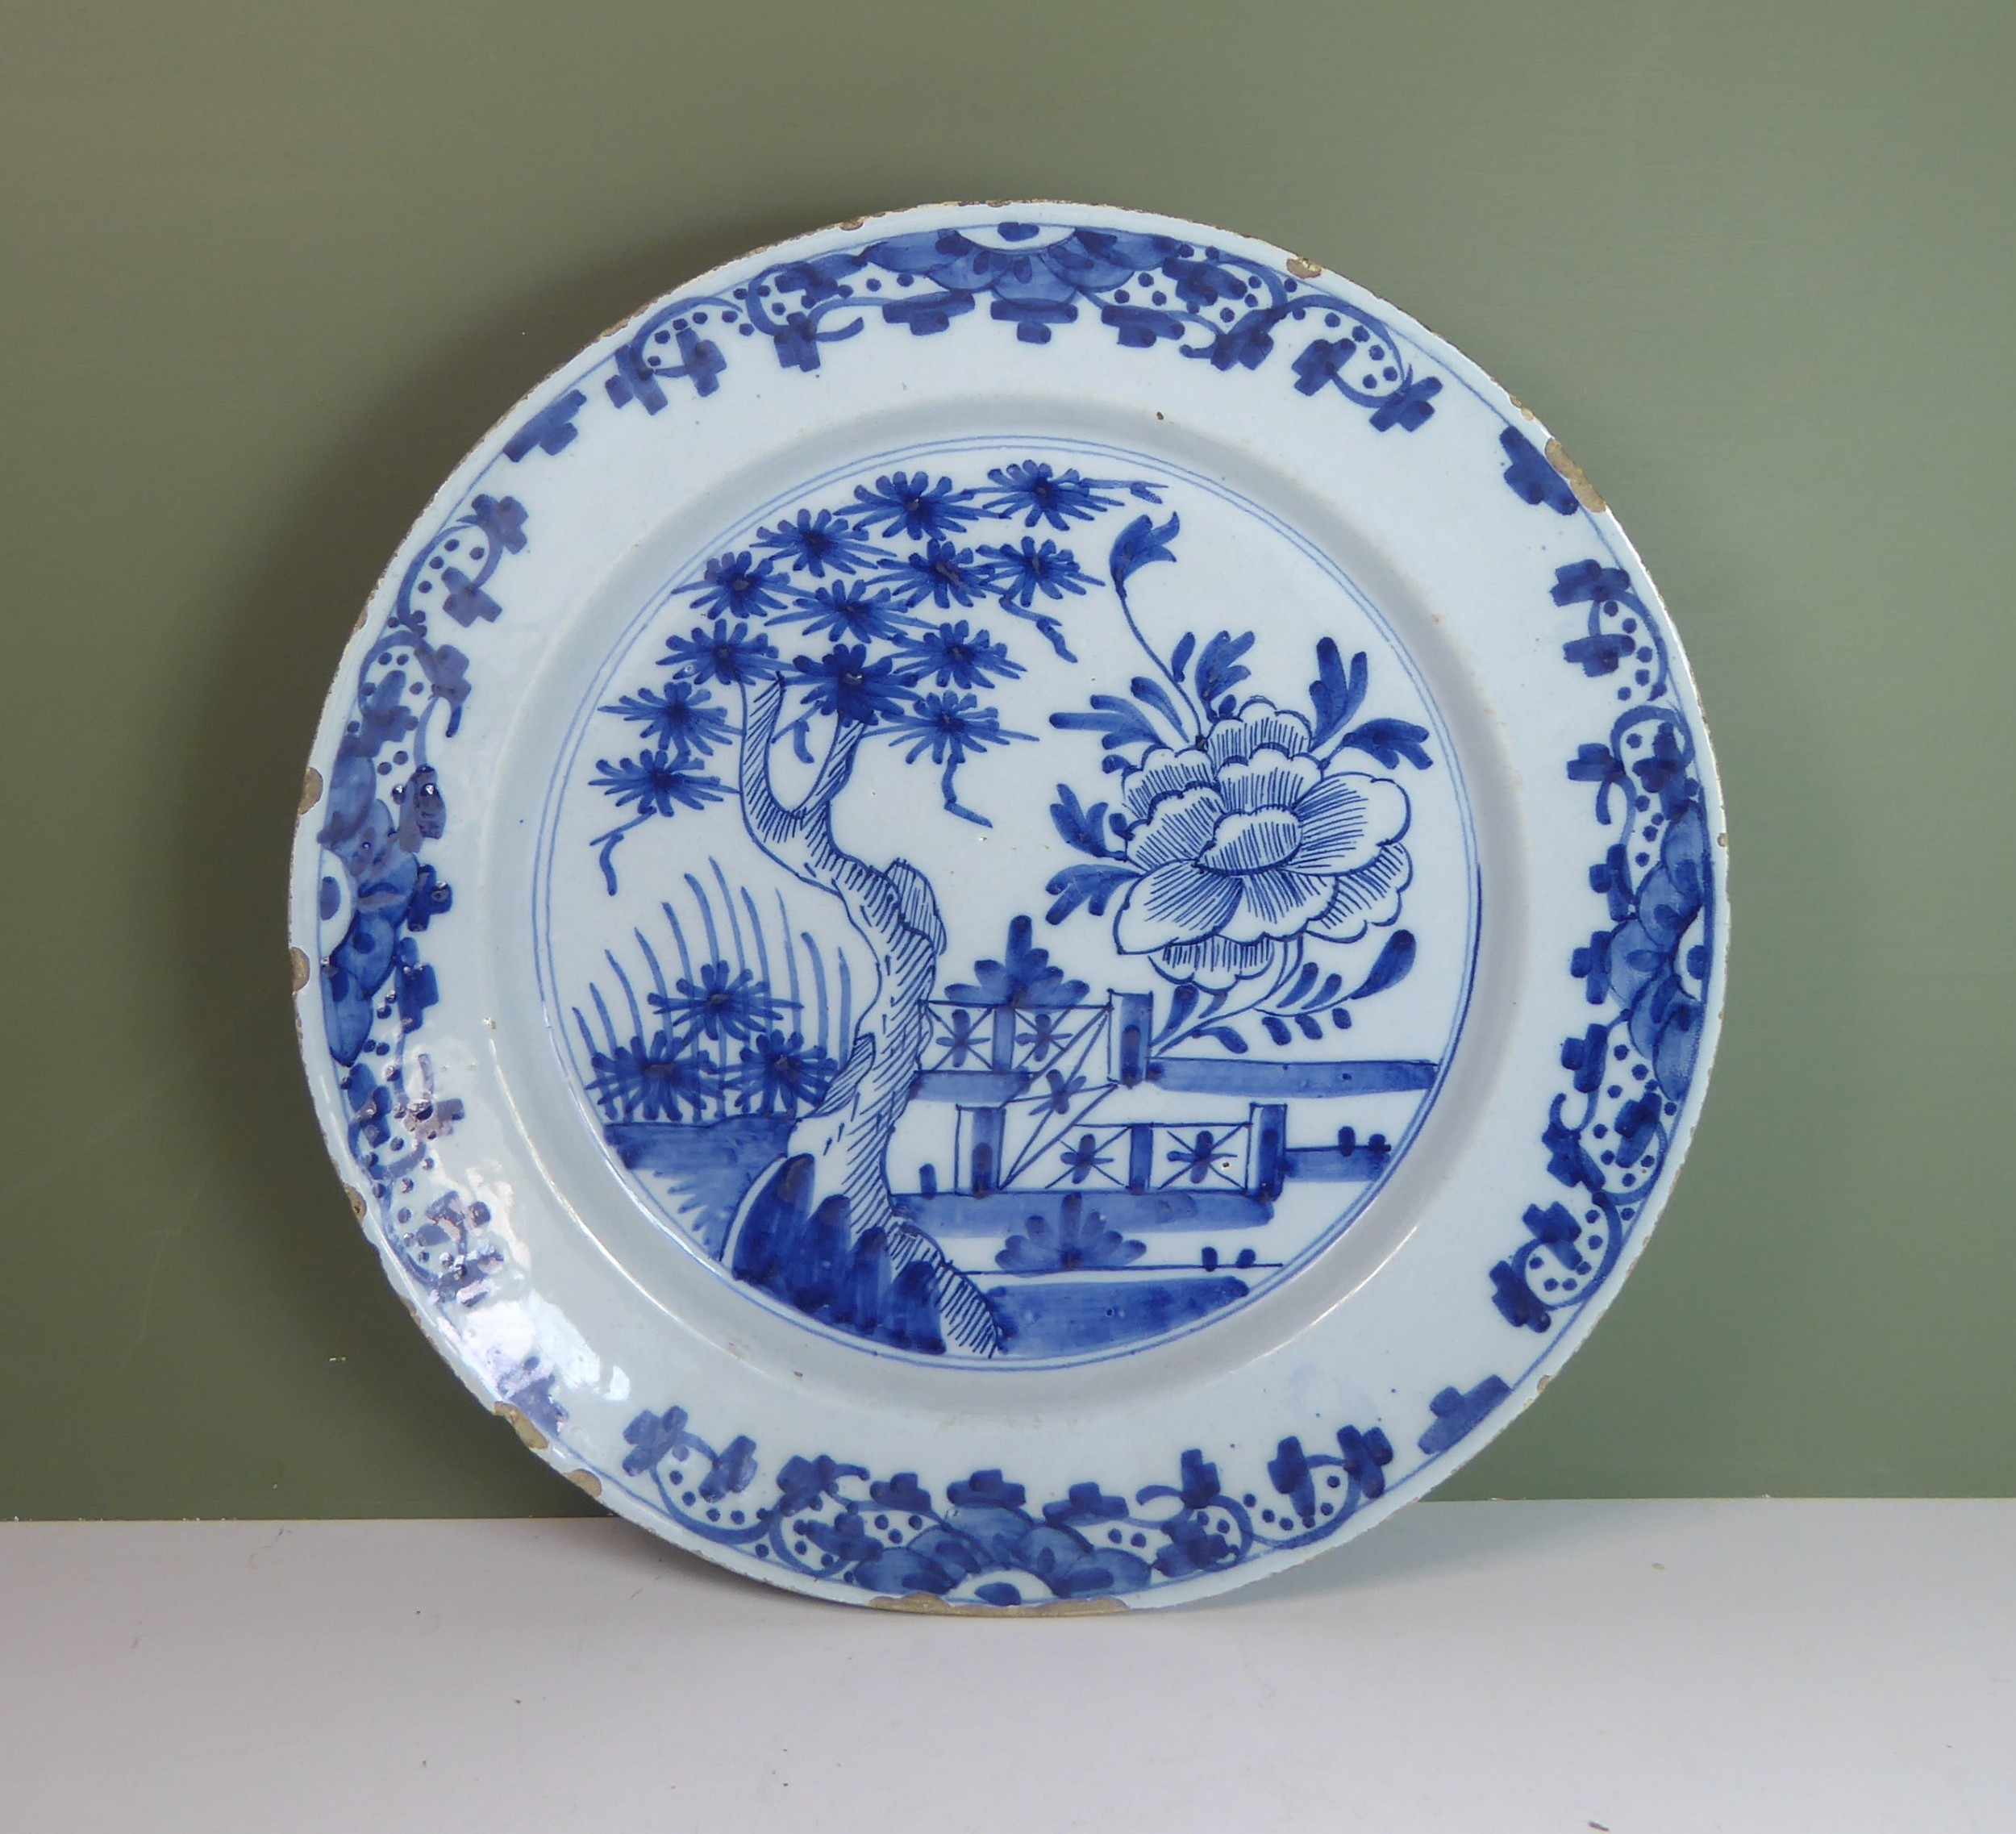 18th c delft charger plate